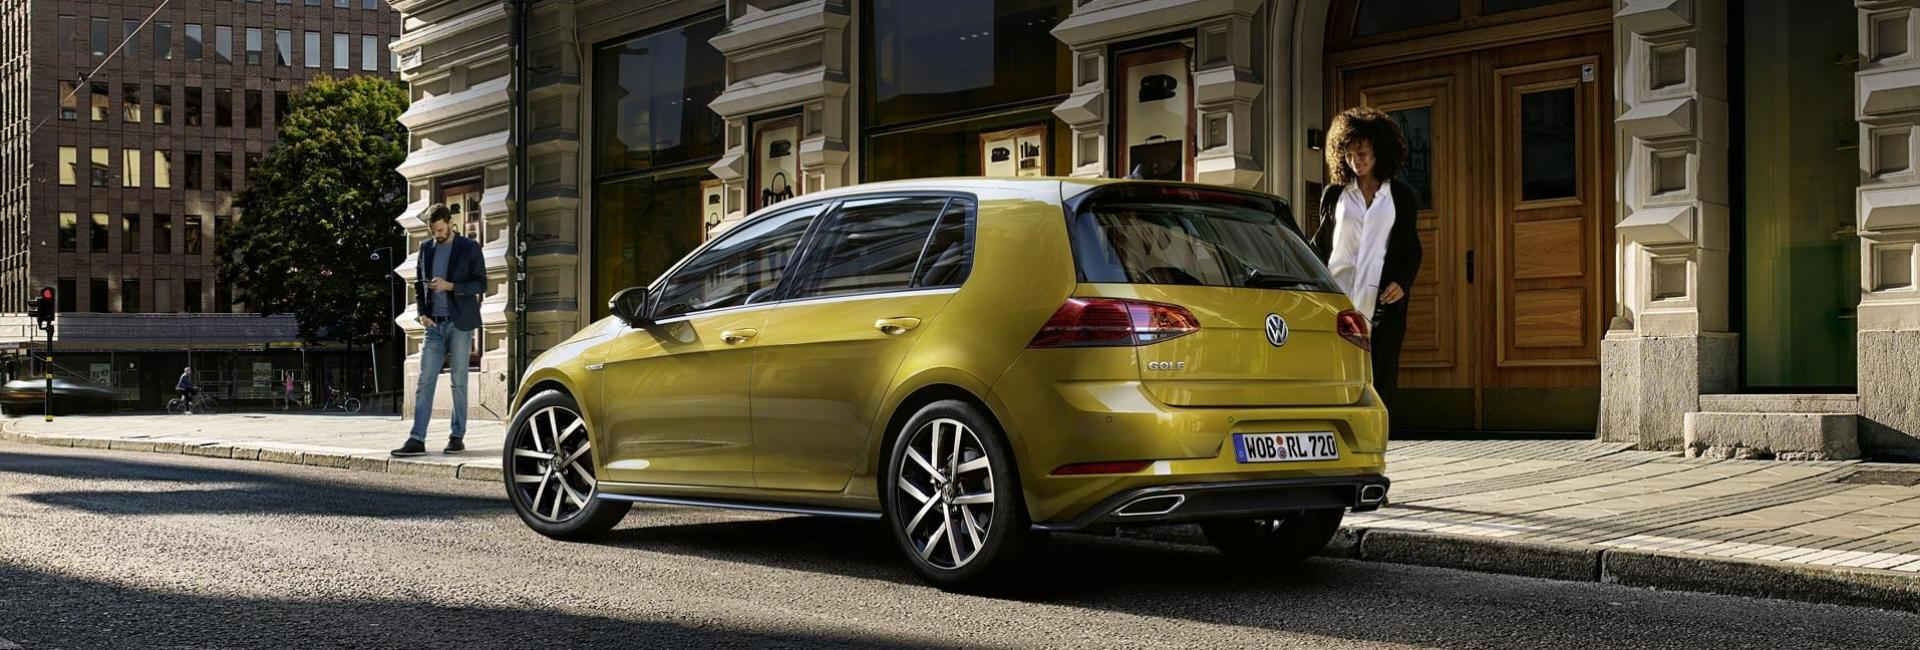 <p>Volkswagen GOLF</p>